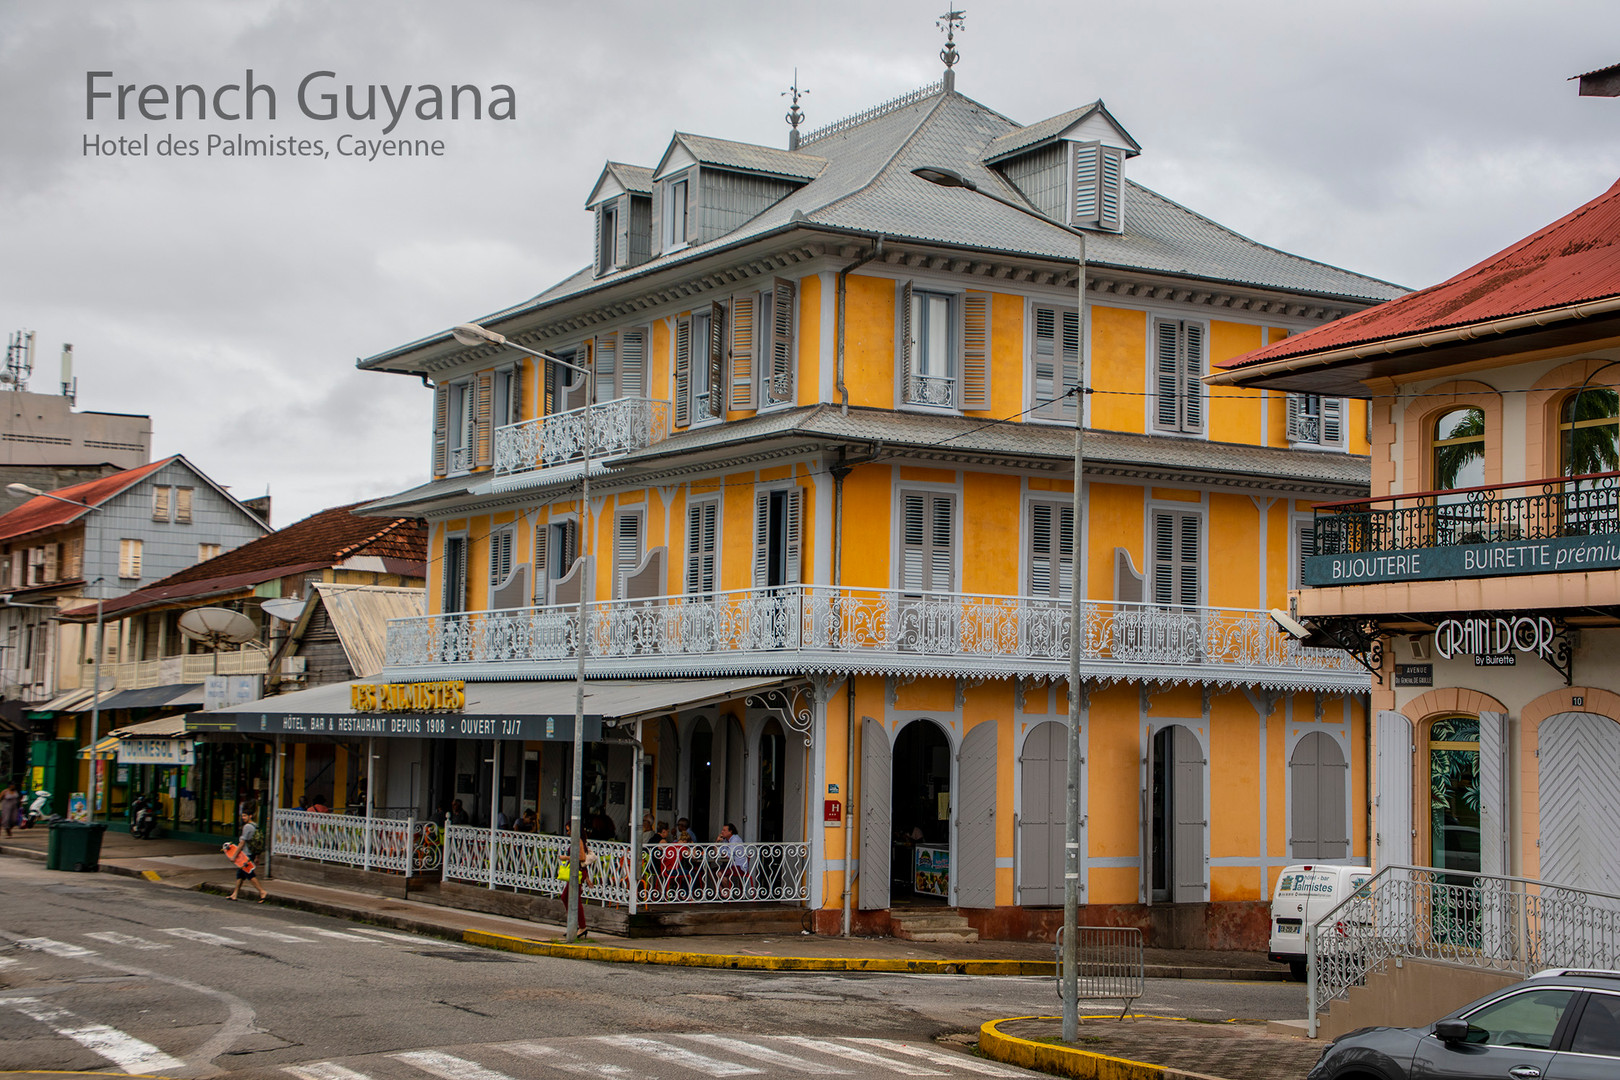 2019-05-16 French Guyana POW (33) 452A67